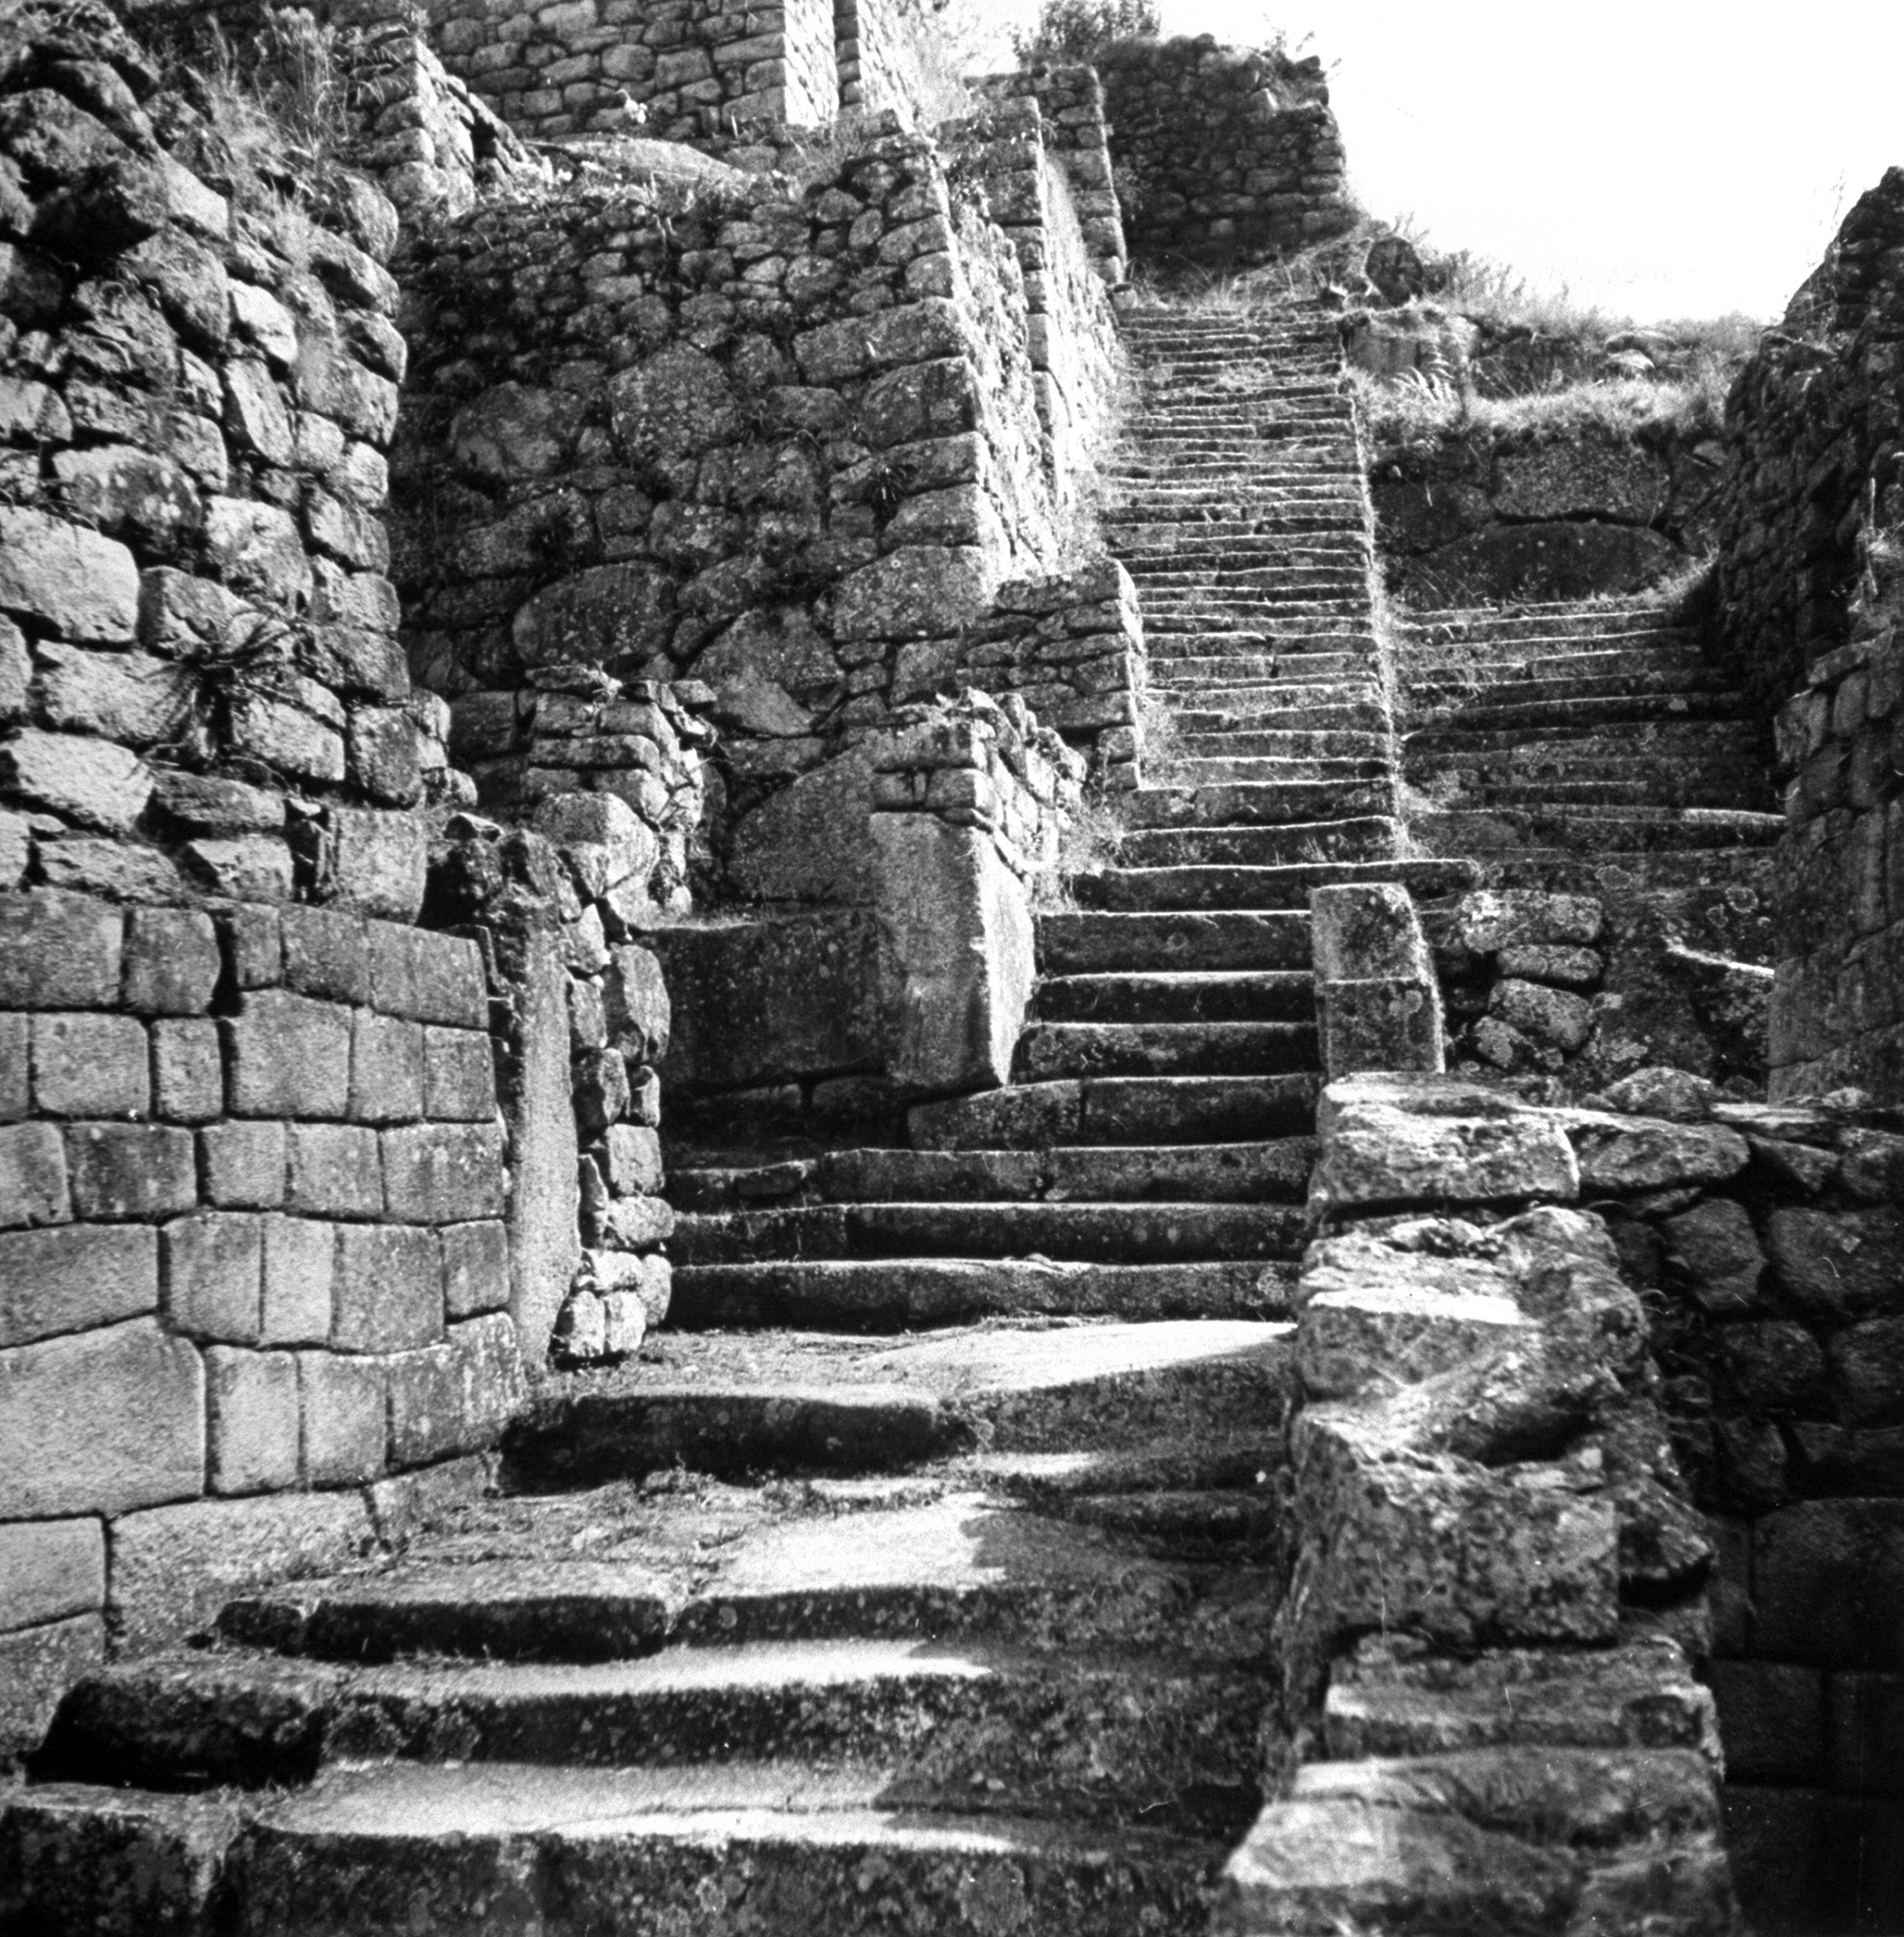 The staircase leading up the Machu Picchu, 1945.